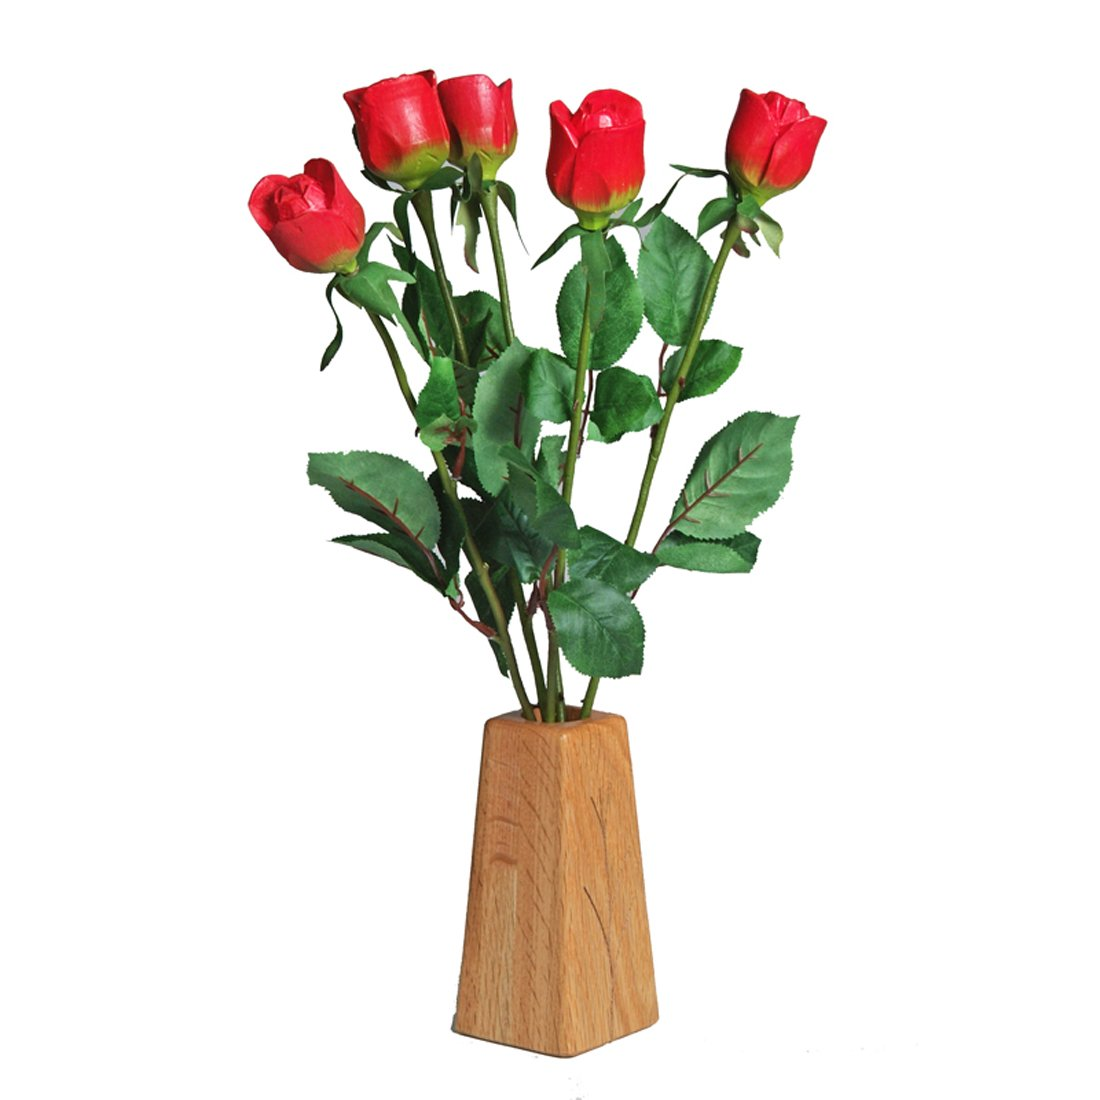 JustPaperRoses 5th Wedding Anniversary Gift wood roses 5-Stem Bouquet and Wood Vase